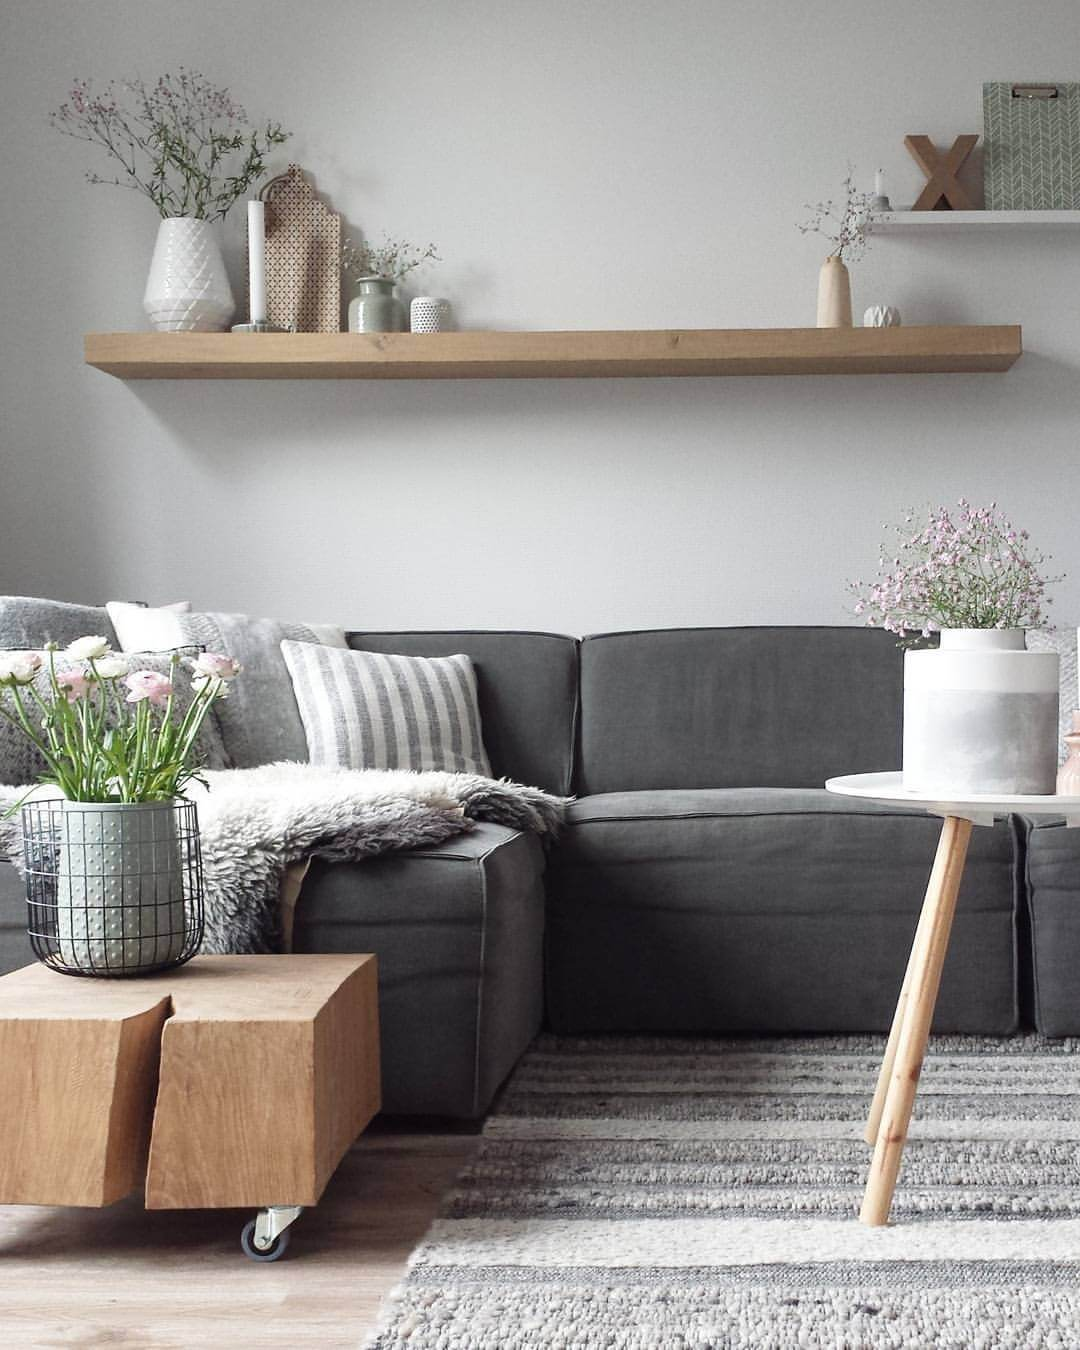 Warm Woods, Soft Textures Living Room